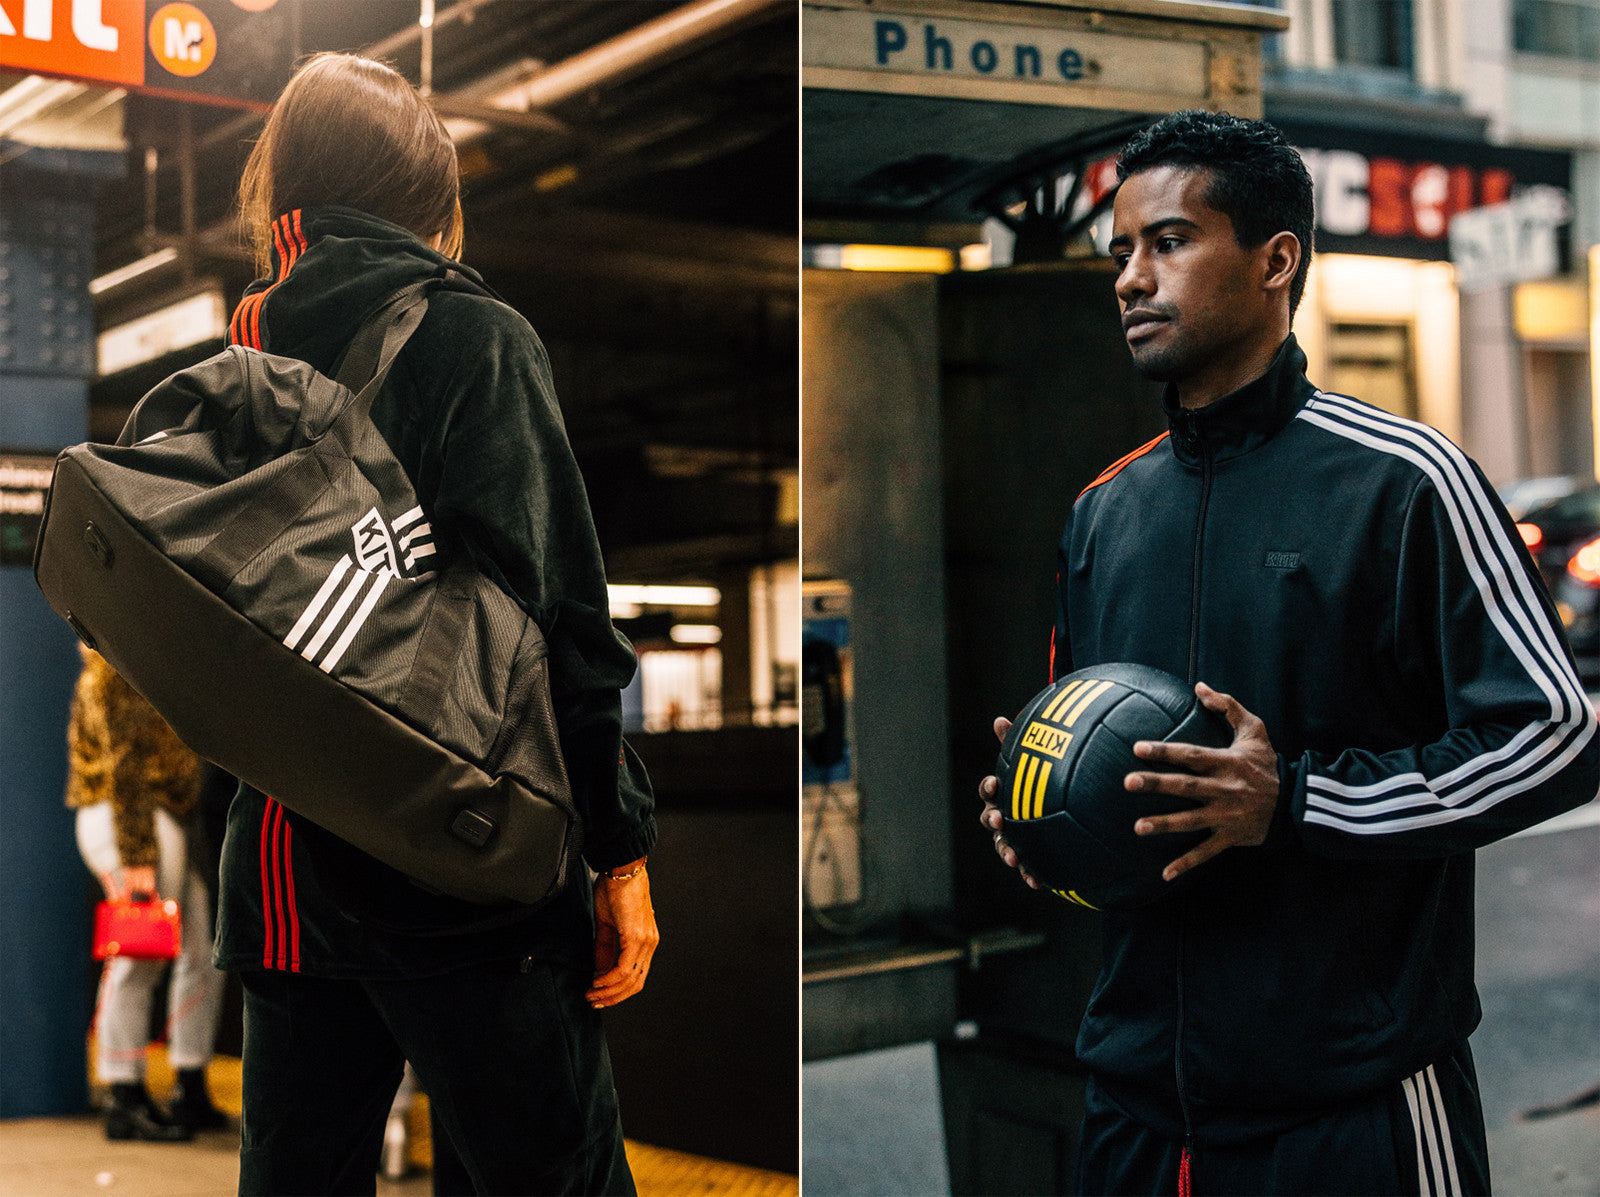 3fde46a691fb Kith x adidas Soccer Cobras Lookbook. May 30